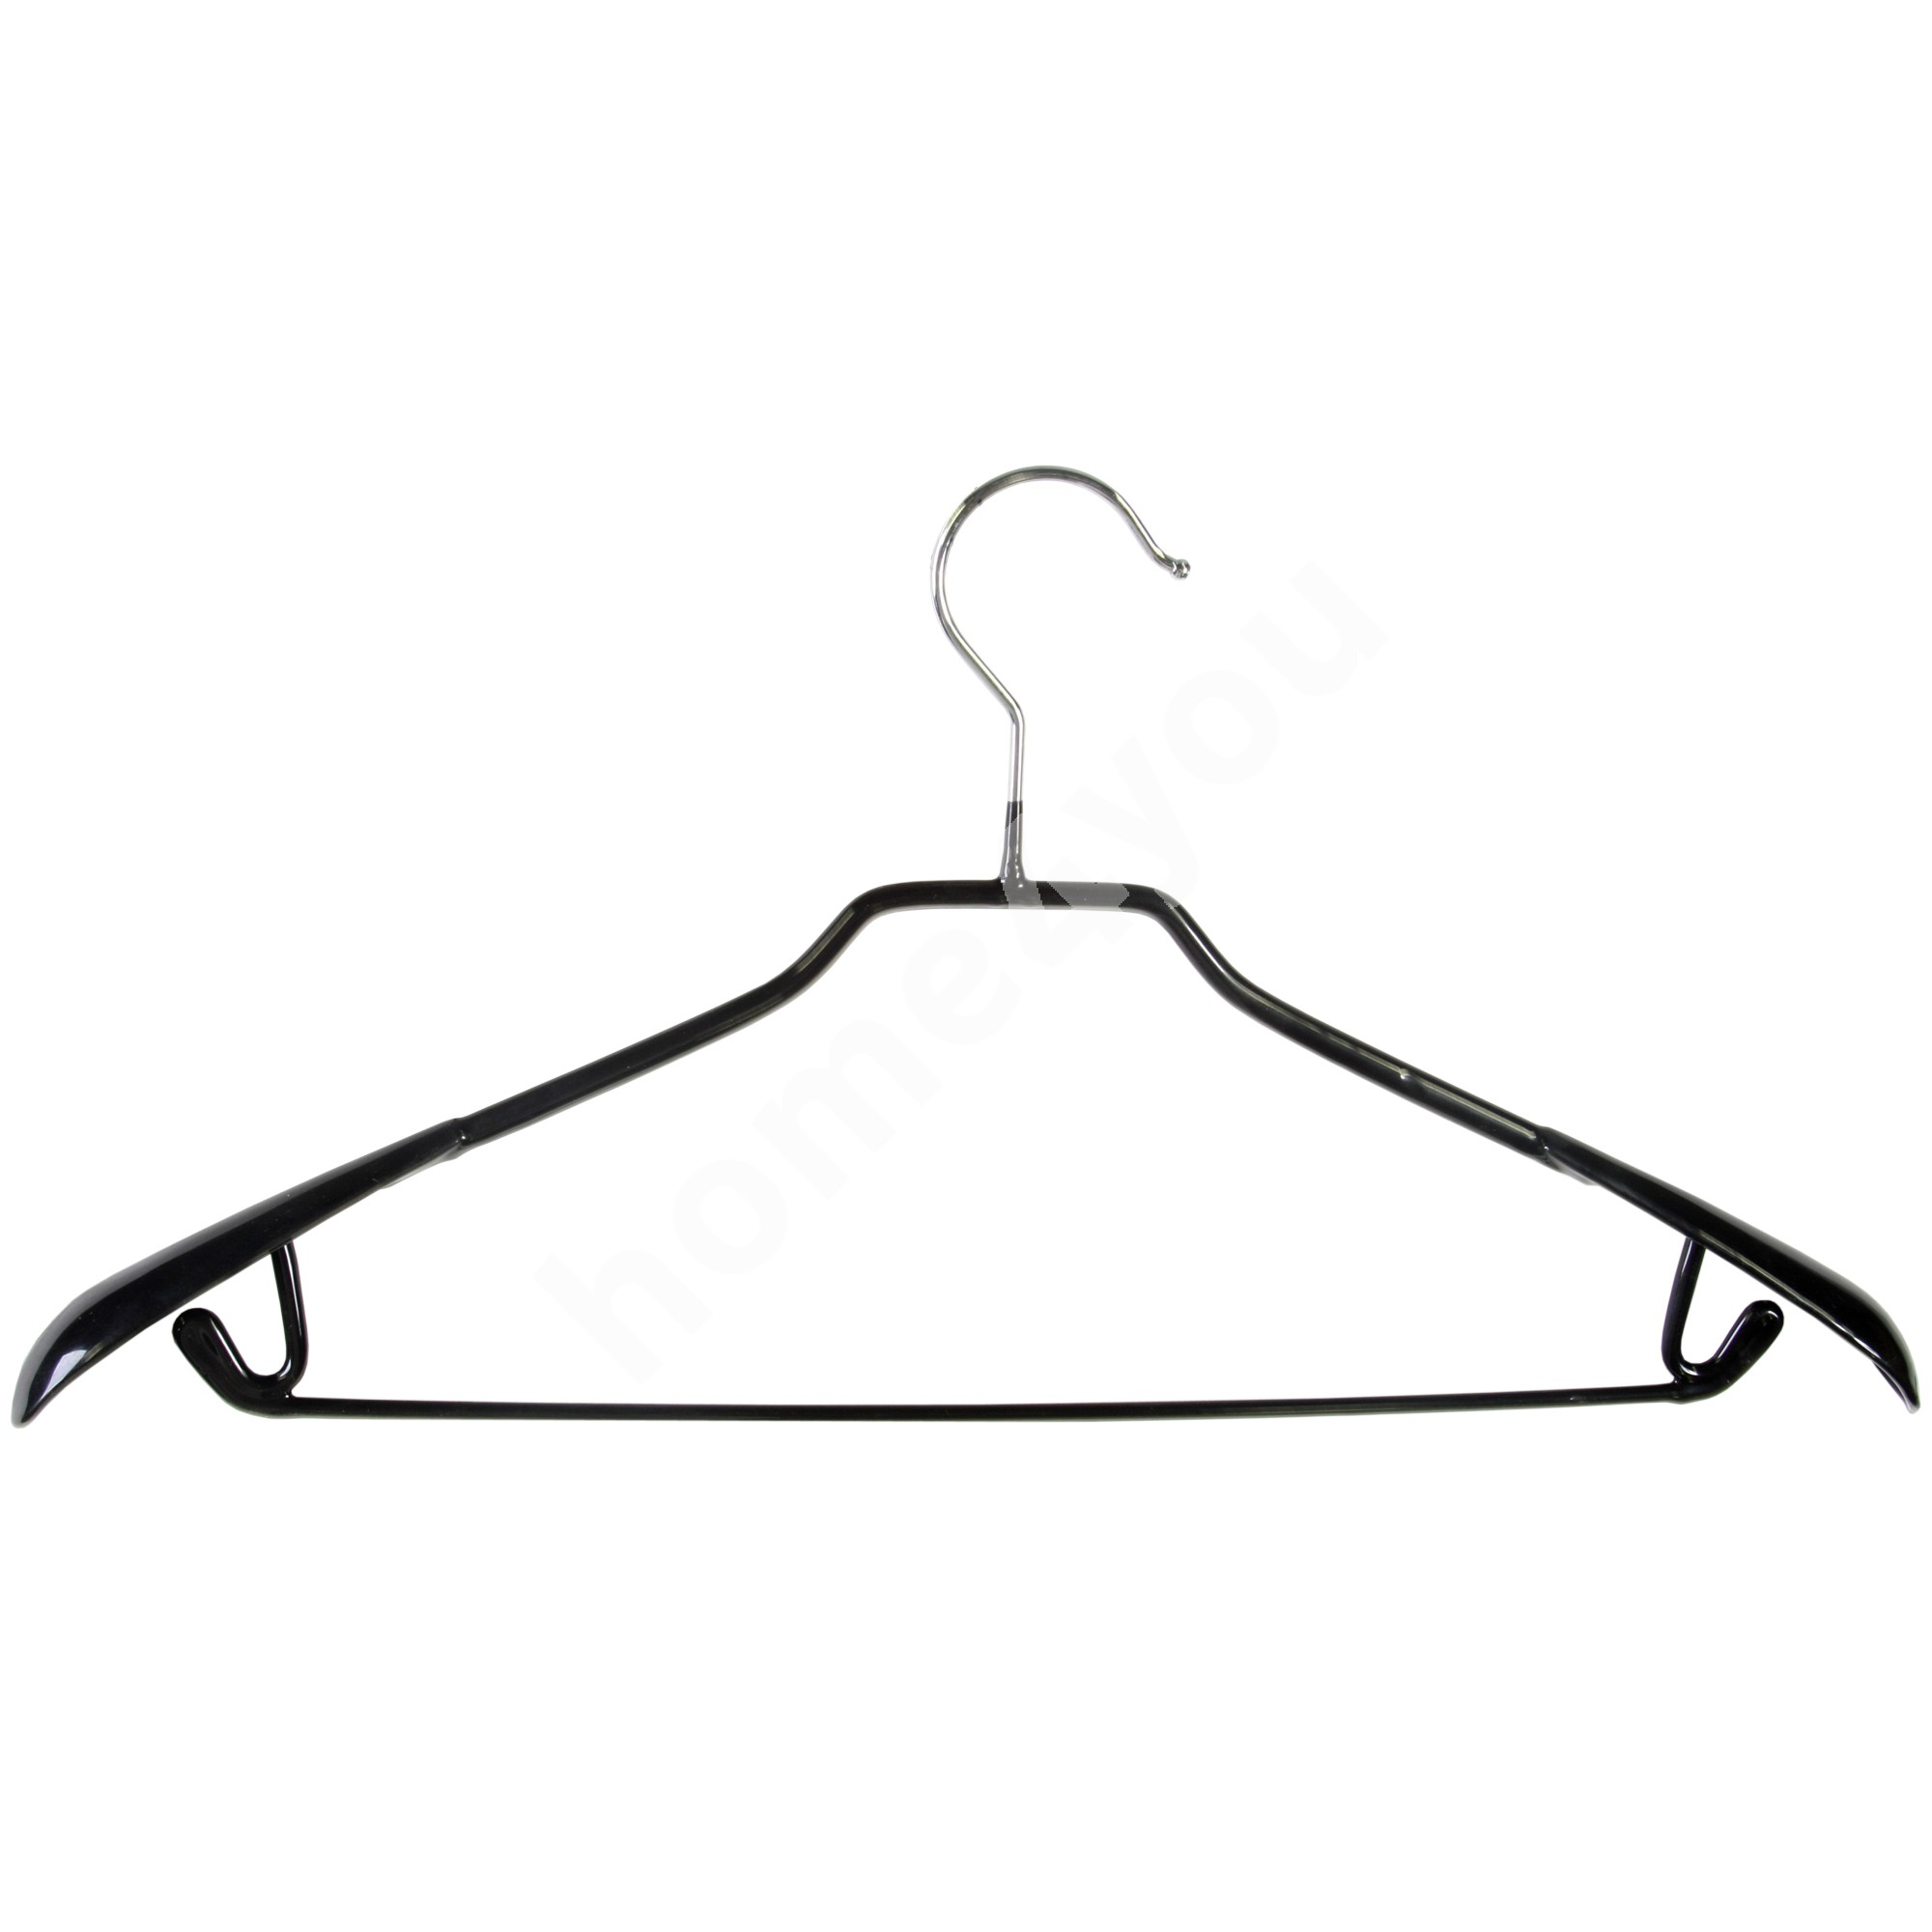 Cloth hanger with trouser bar and hooks, non-slip, black PVC cover